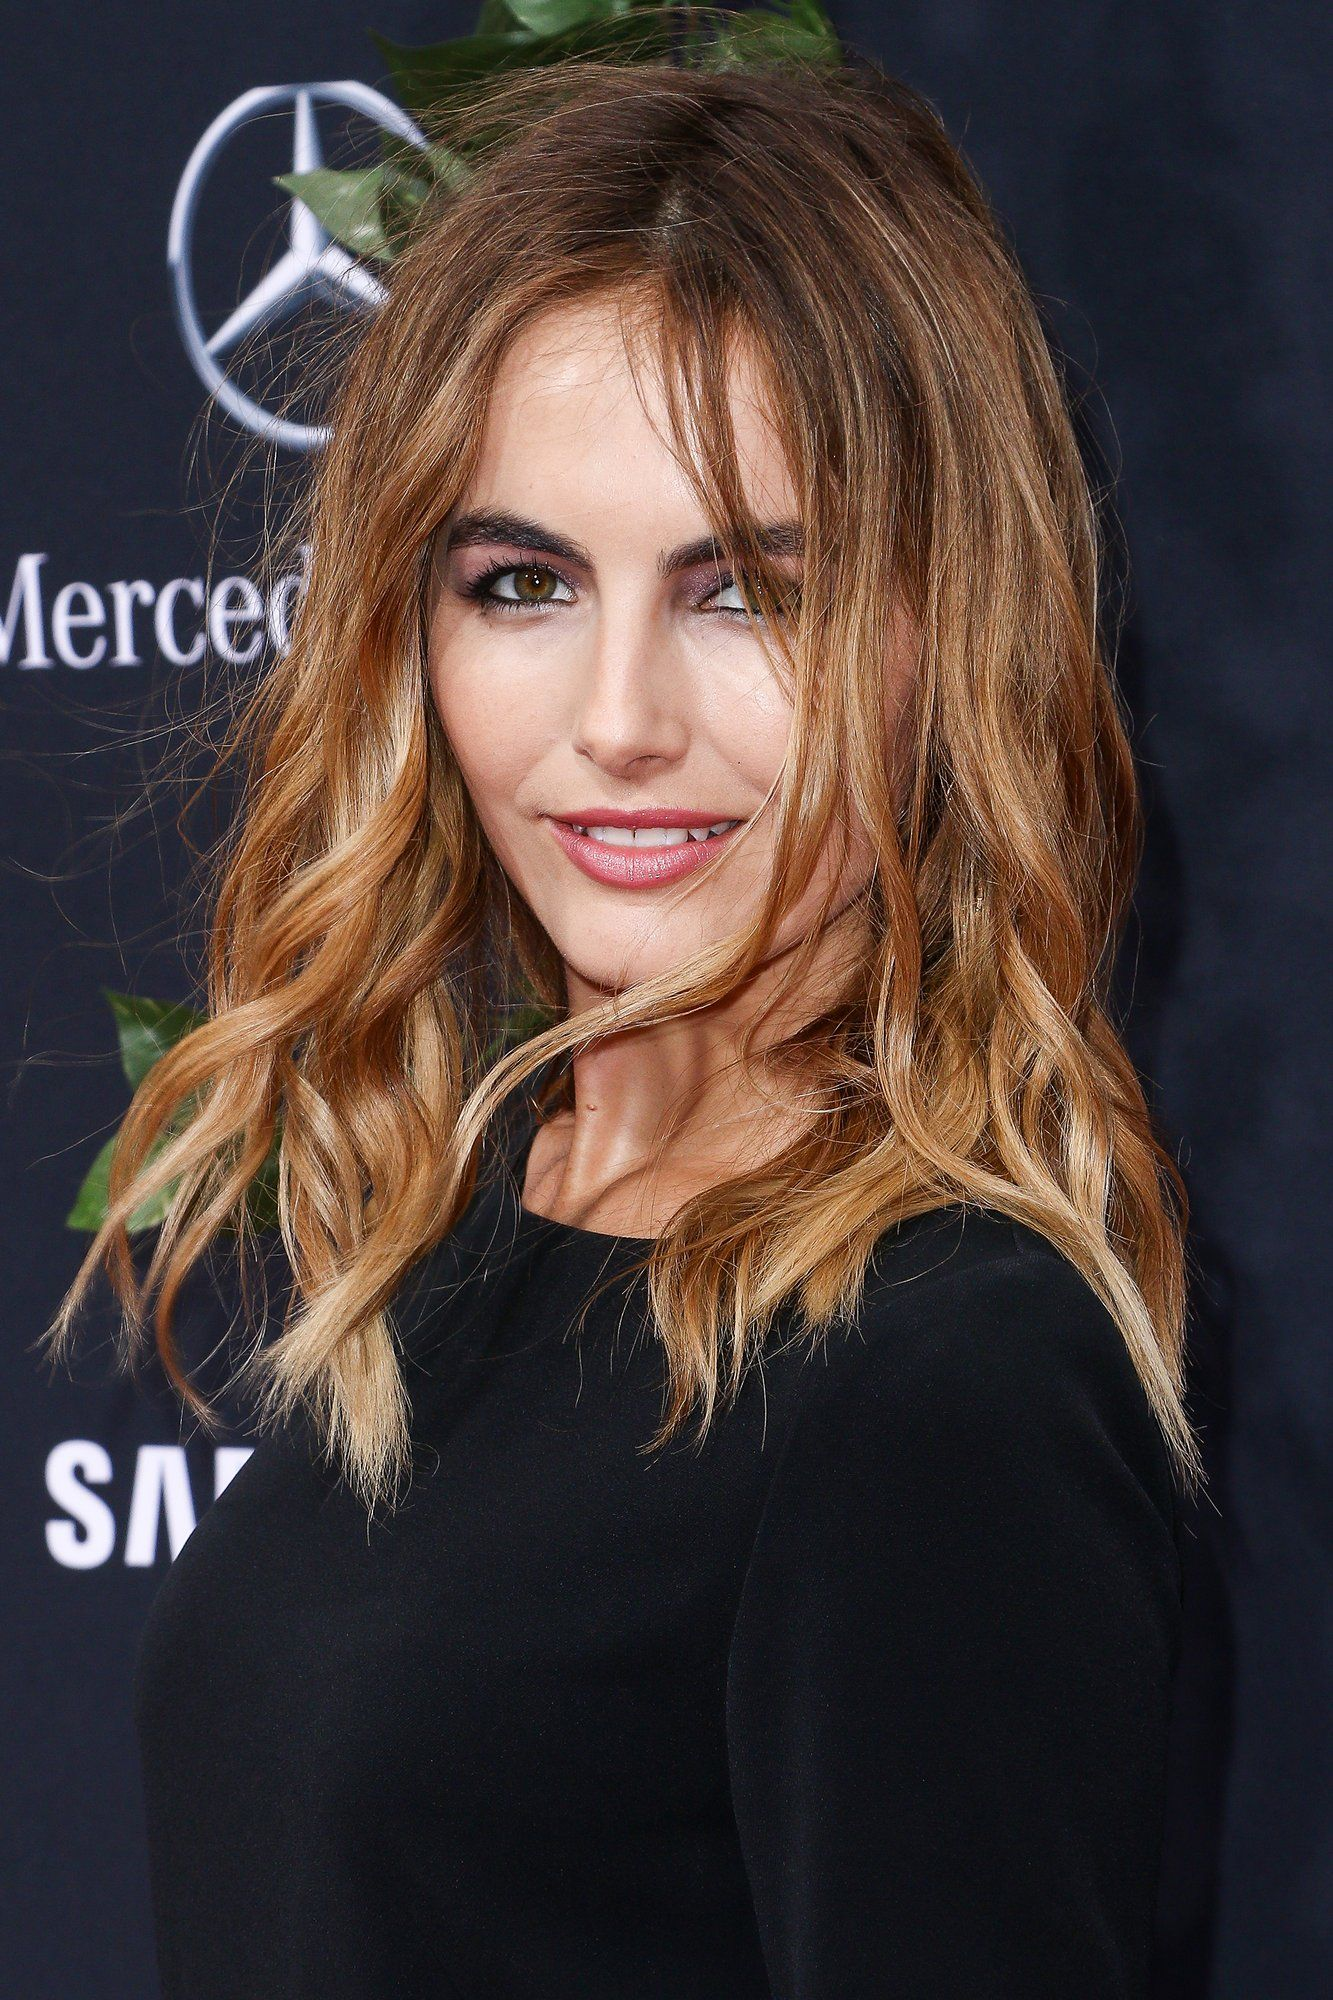 Top 10 Celebrity Beauty Looks For June Camilla Belle Blonde Hair For Hazel Eyes Brown Hair With Blonde Highlights Strawberry Blonde Highlights